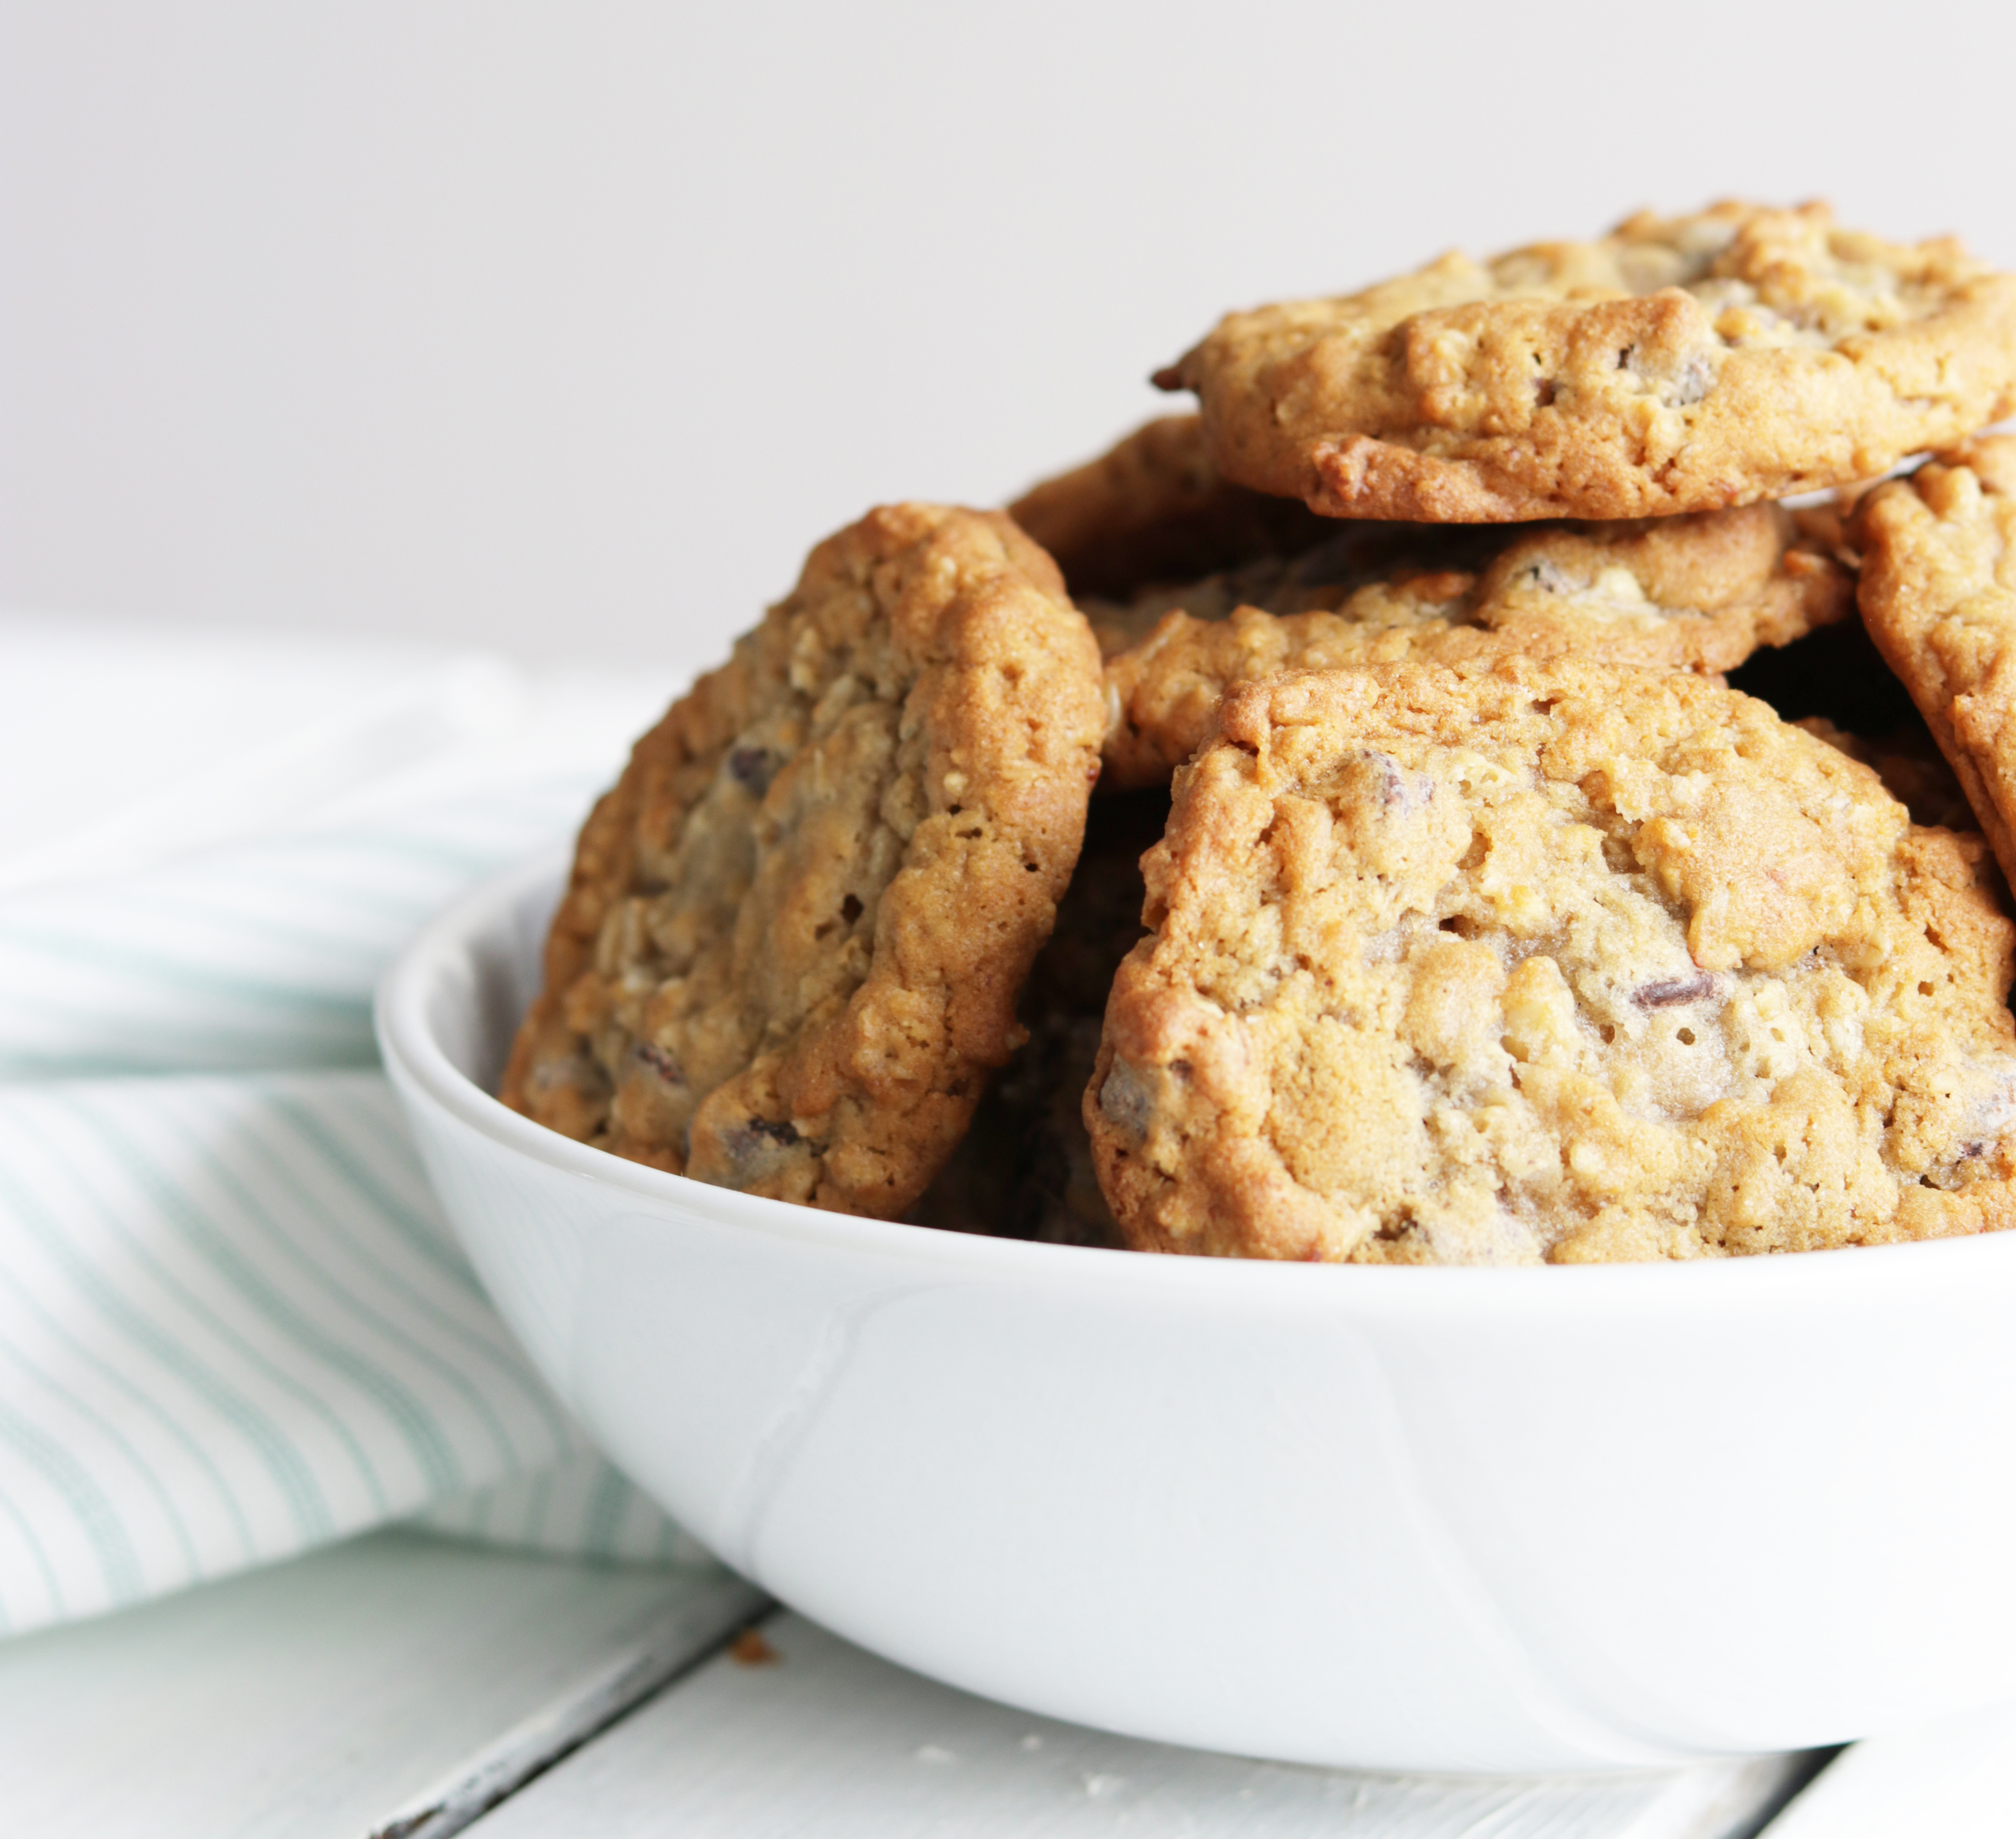 These gluten-free oatmeal chocolate chip cookies are the perfect healthy treat.